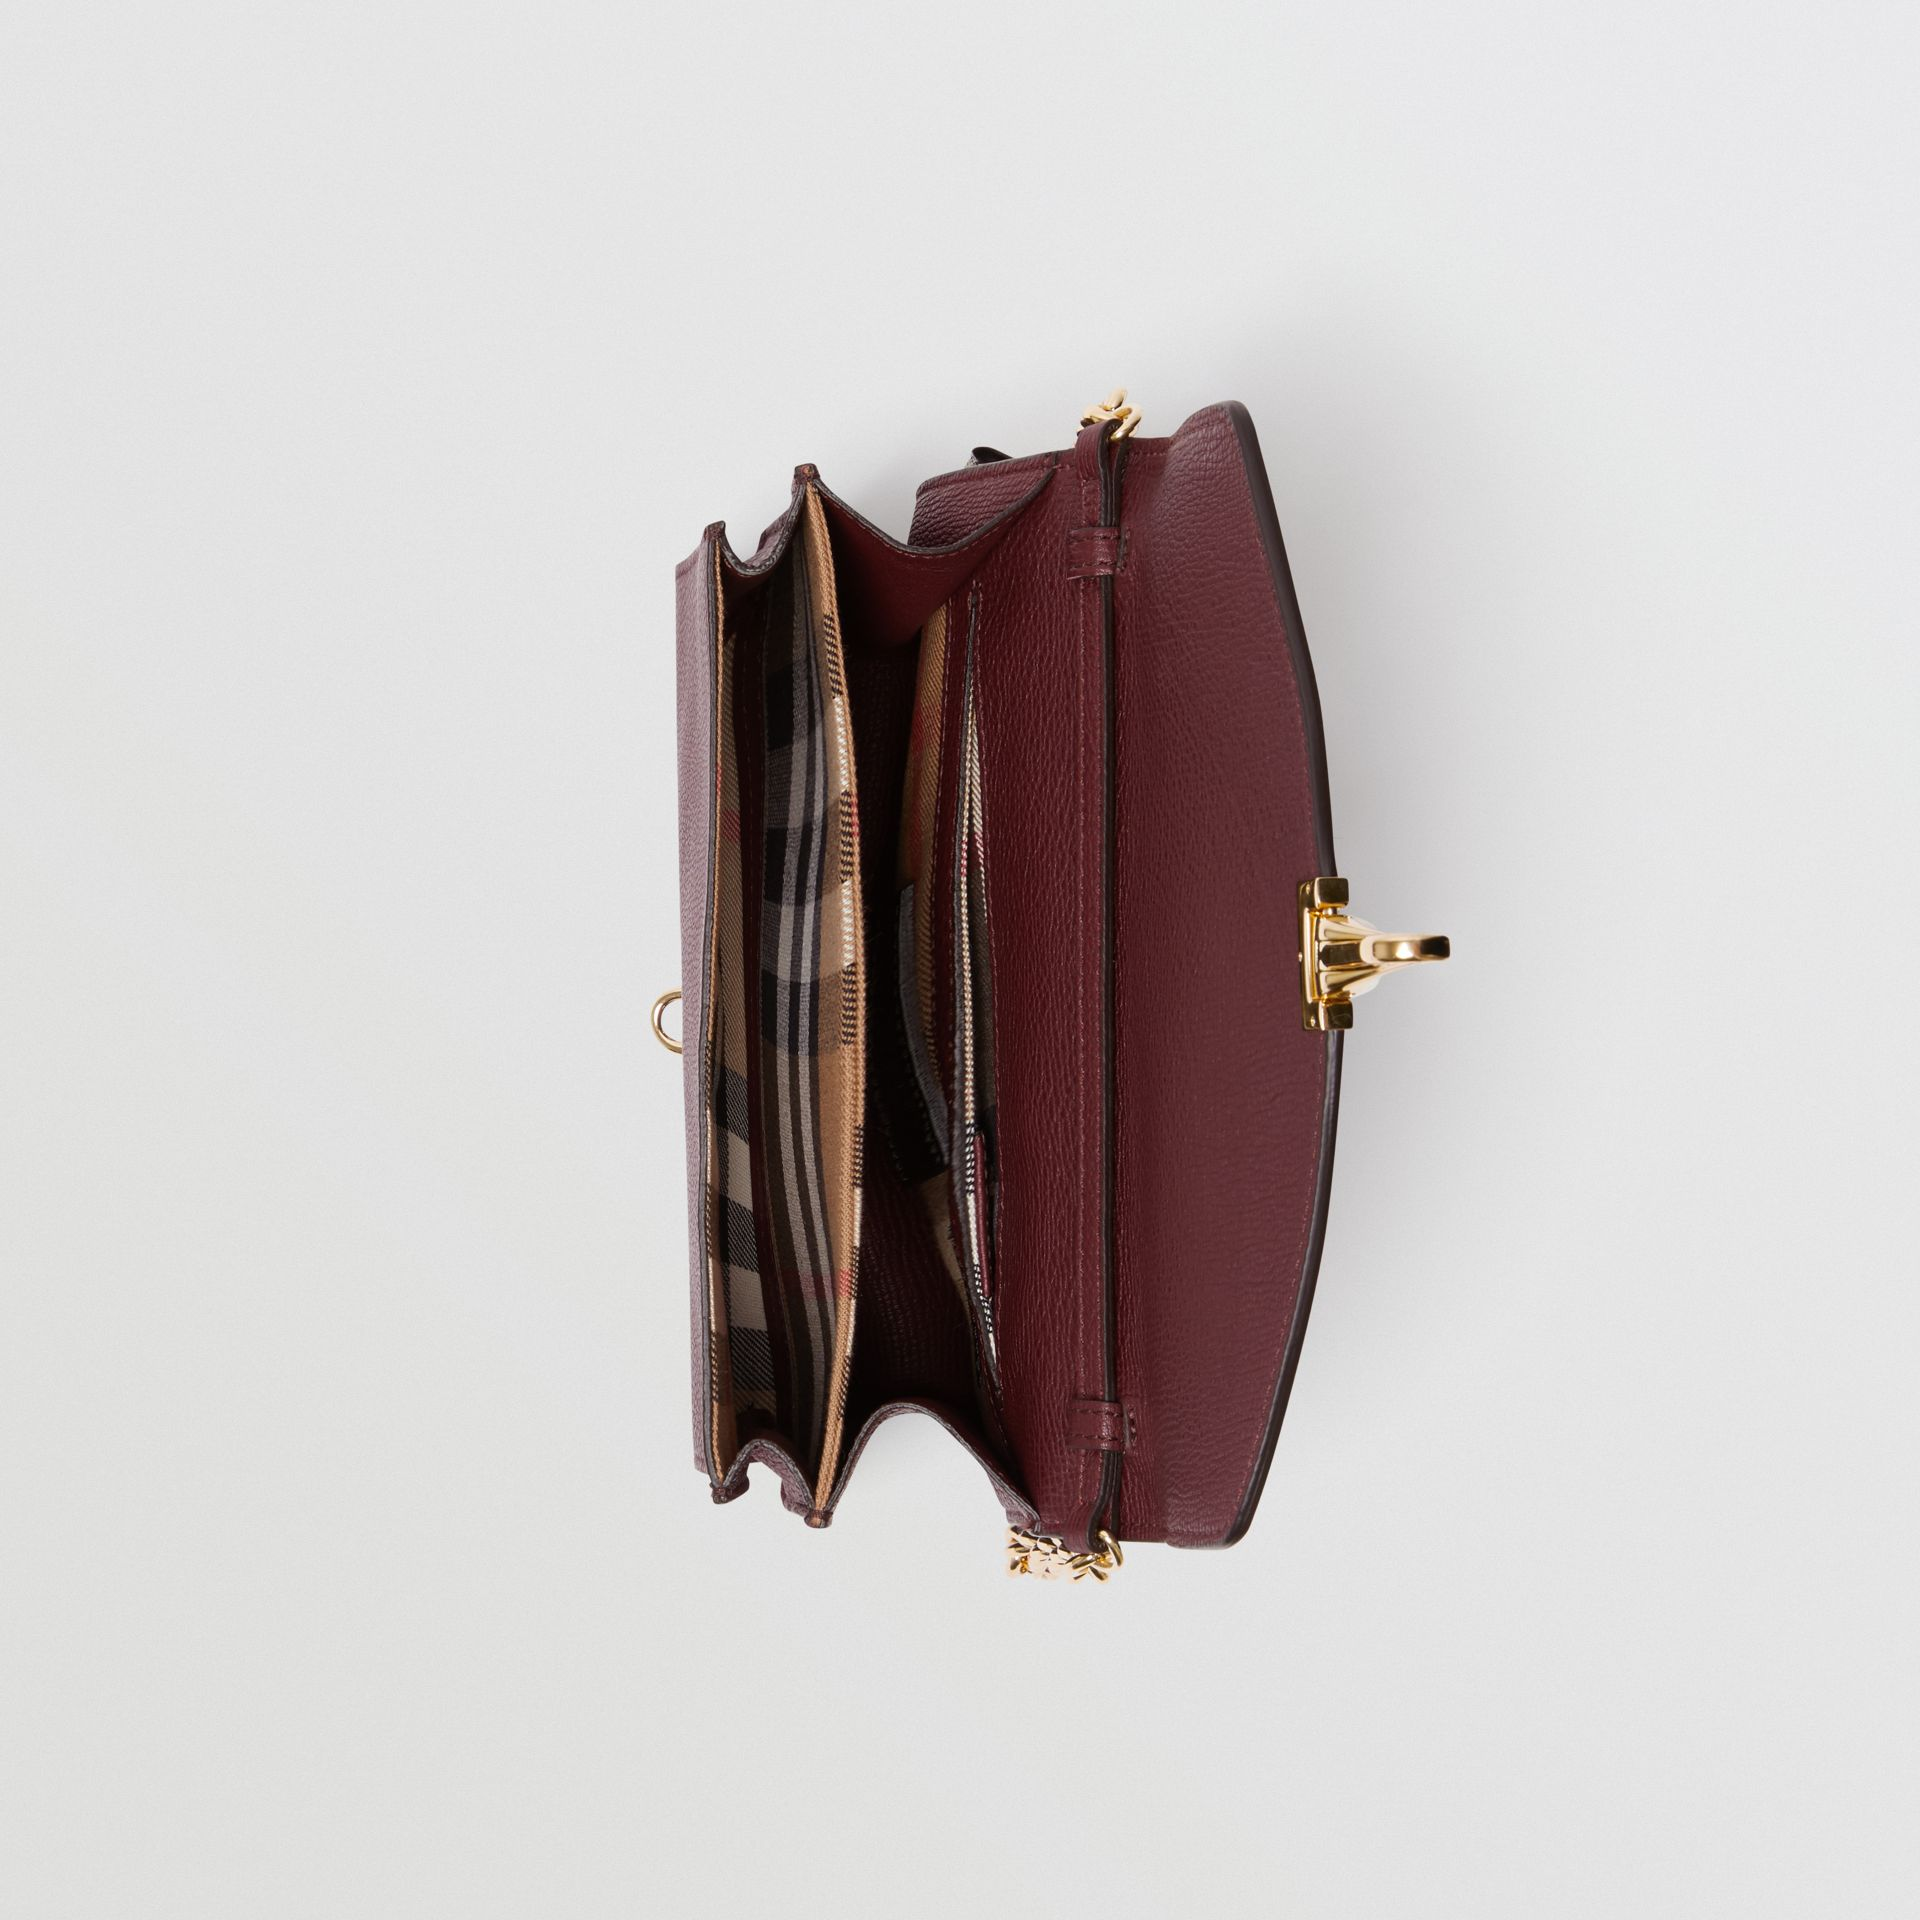 Small Leather Crossbody Bag in Mahogany Red - Women | Burberry Australia - gallery image 5